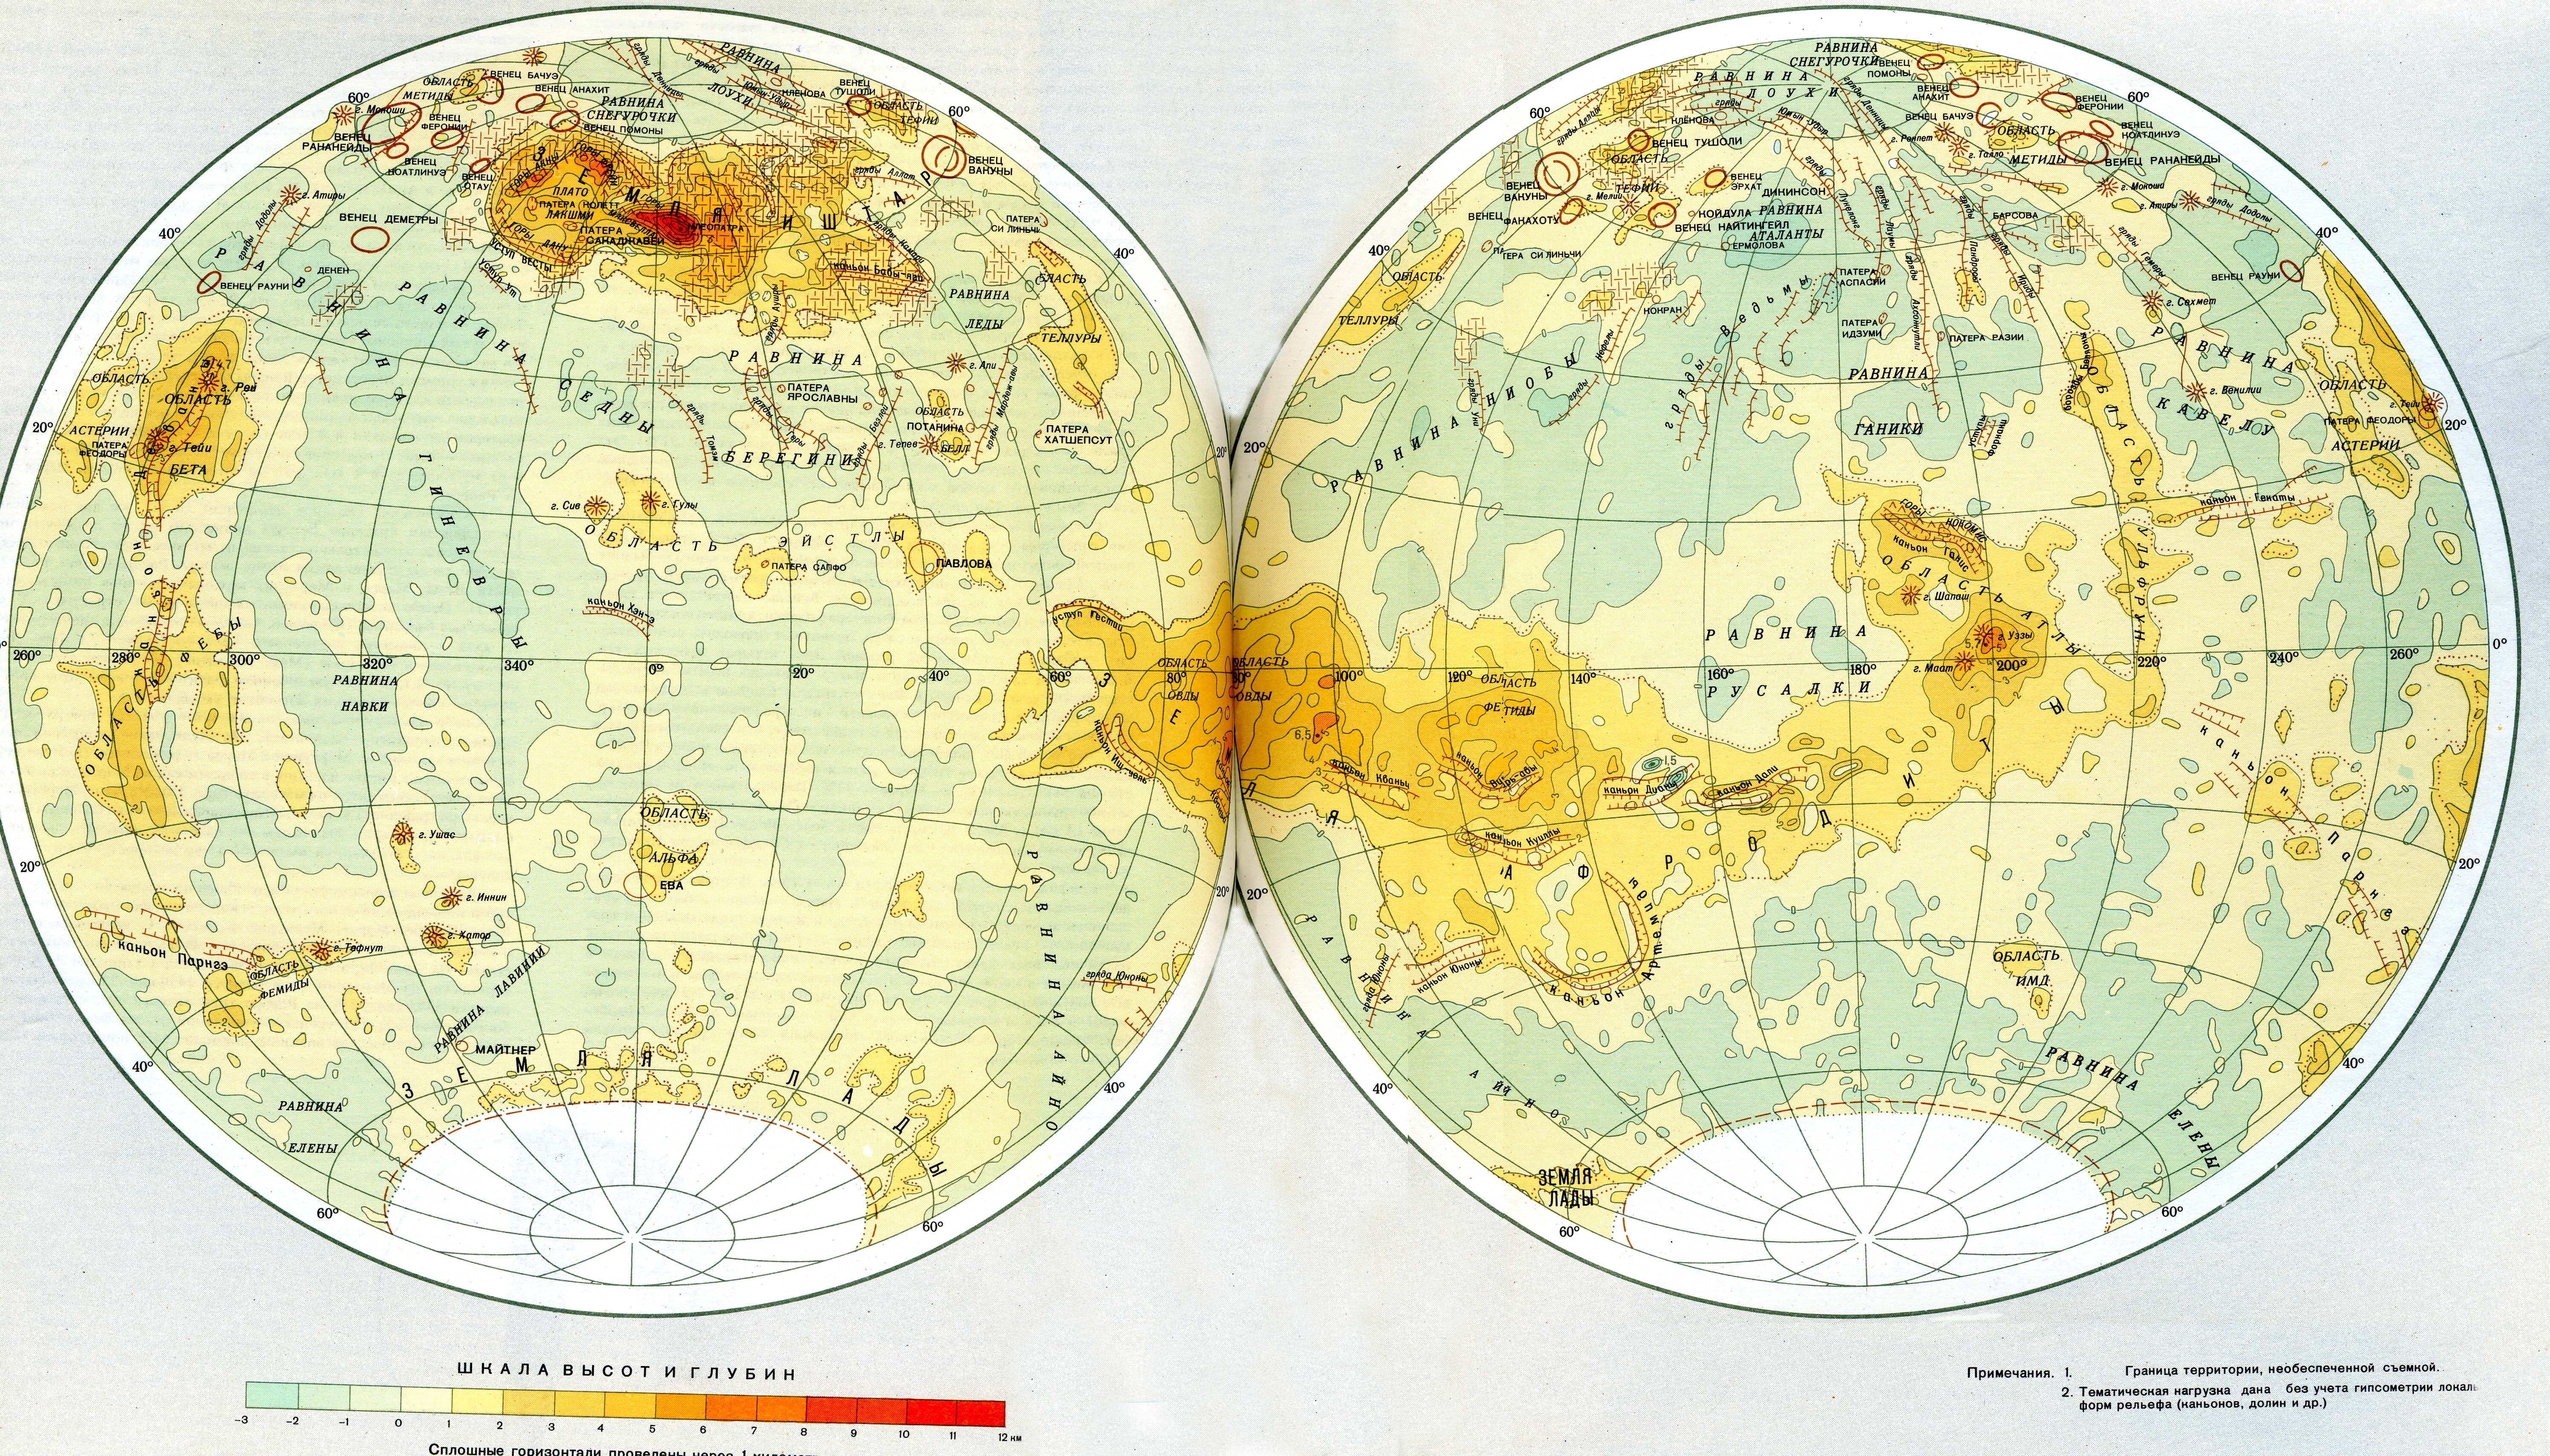 29 [picture] complete Venus Map – Continent Ishtar Terra is on the left side up